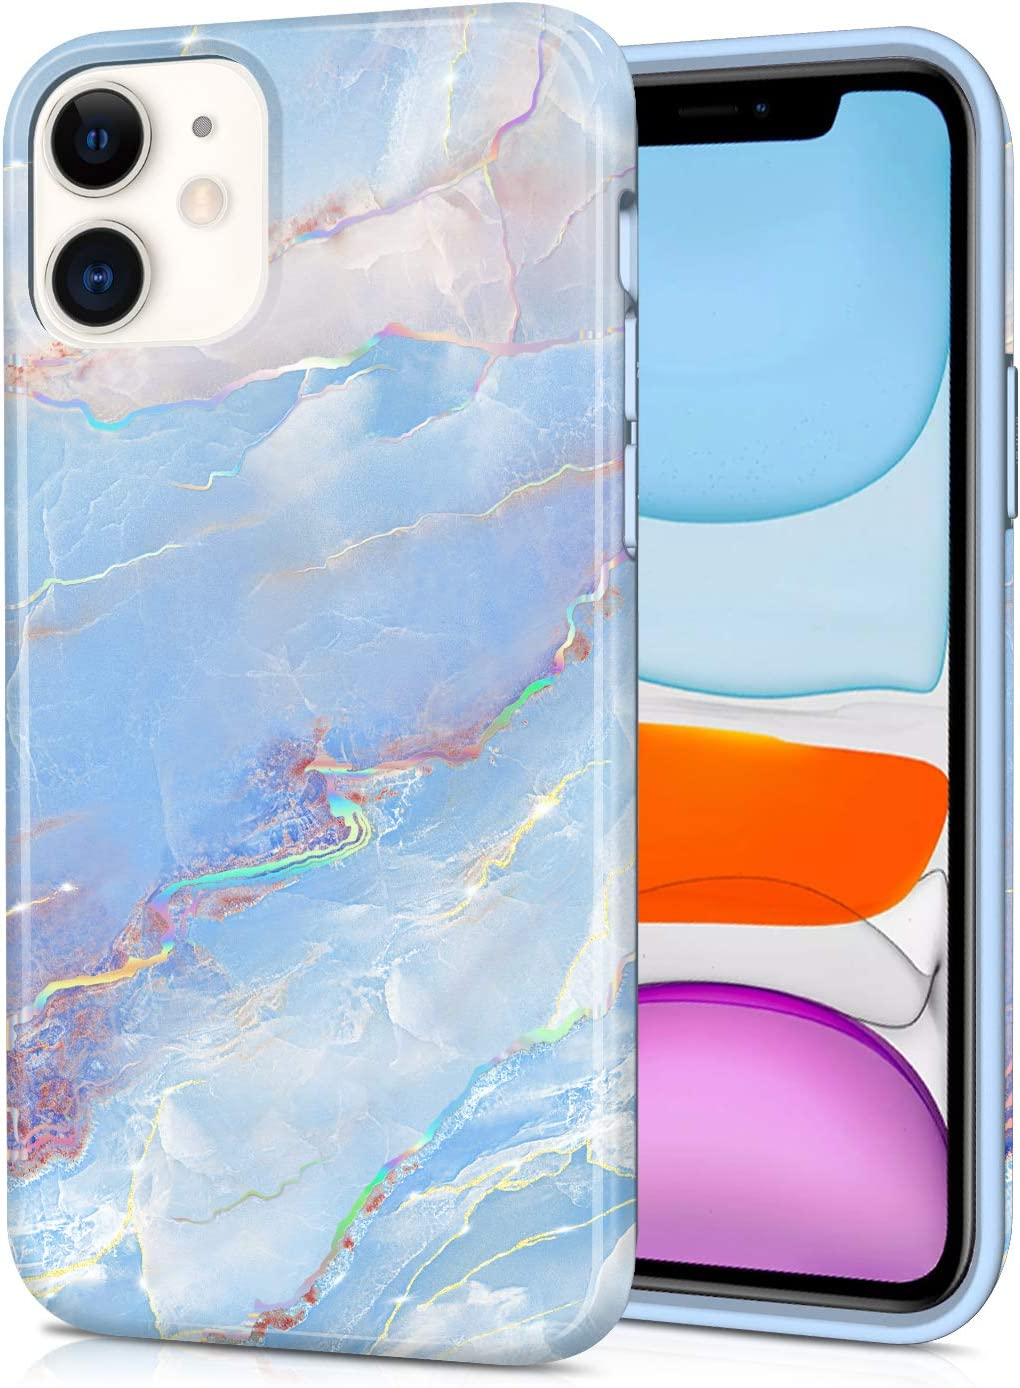 CAOUME iPhone 11 Case Blue Marble Design Sparkly Glitter Protective Stylish Slim Thin Cute Holographic Cases for Apple Phone 11 (2019 Release), Soft TPU Silicone Bumper Defender Camera Screen